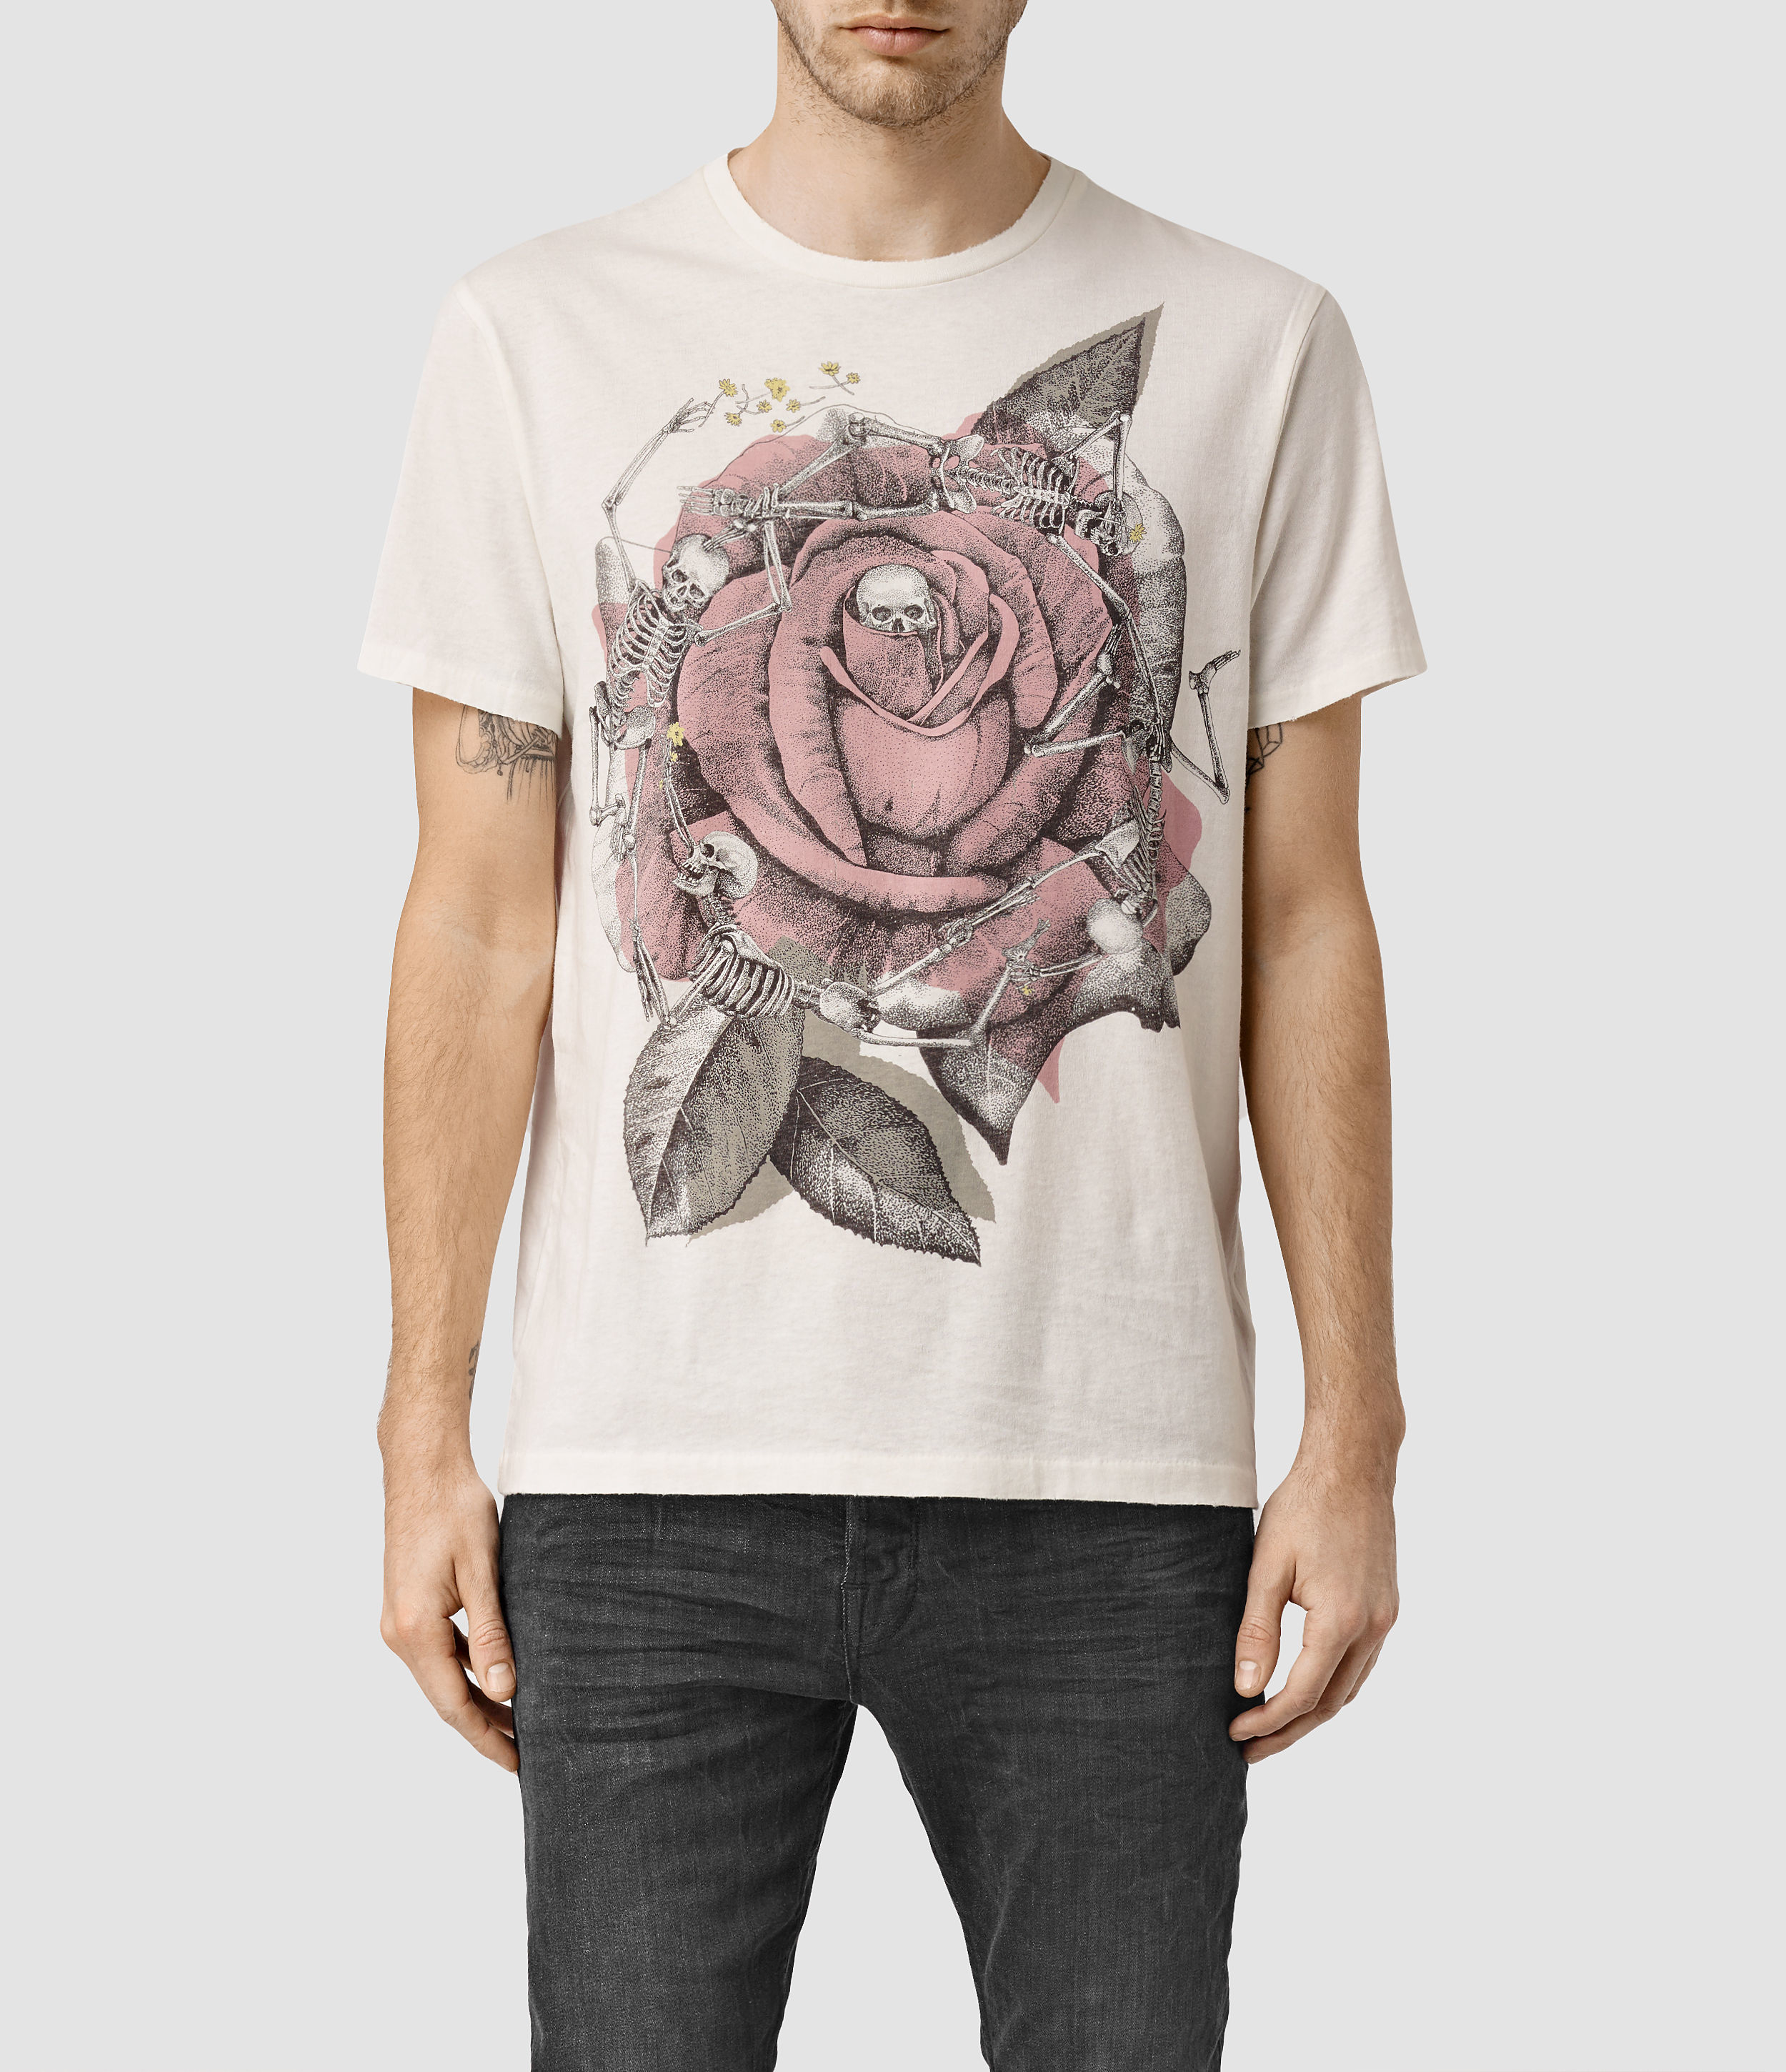 57d703d65 AllSaints Hollywood Rose Crew T-shirt Usa Usa in White for Men - Lyst